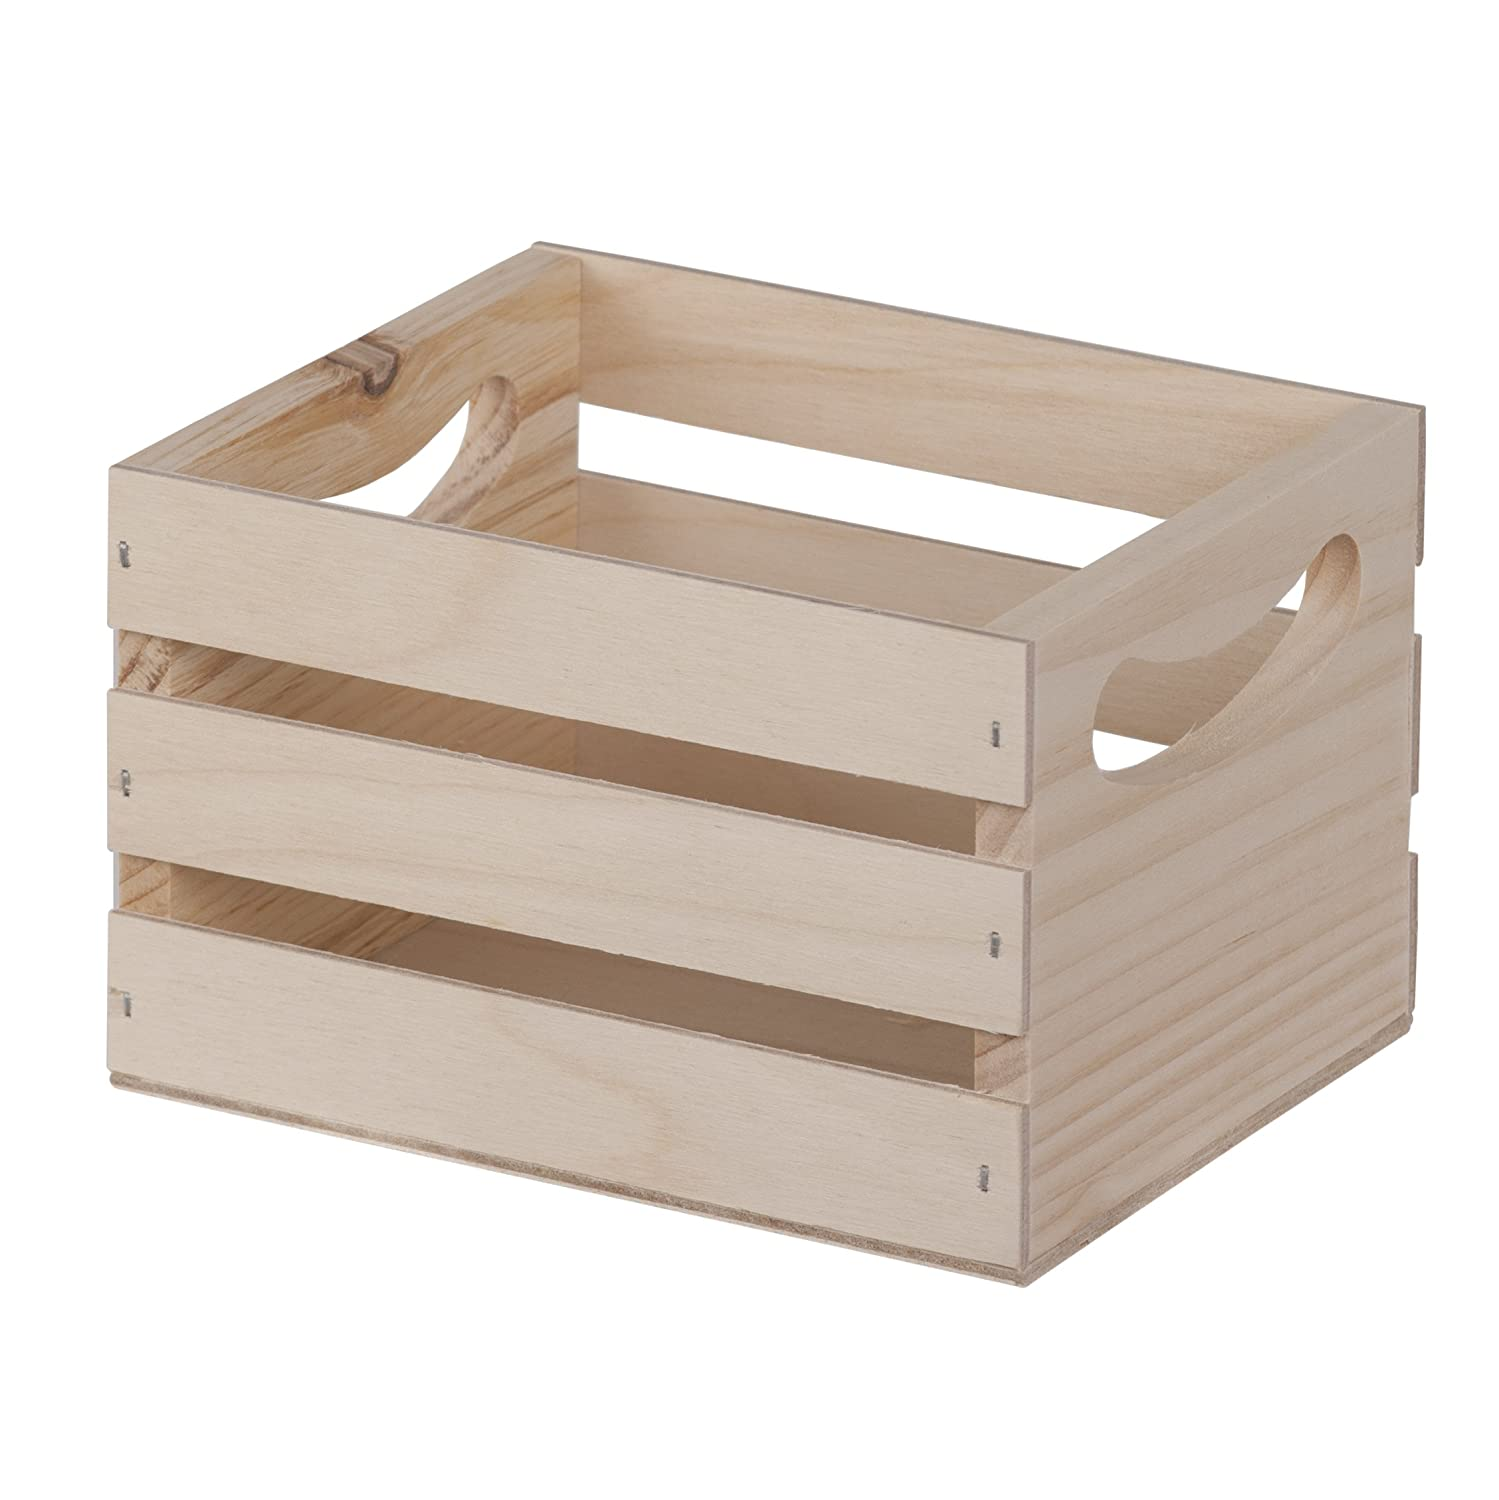 Walnut Hollow 6.5 by 5.3 by 4.25-Inch Crate, Mini